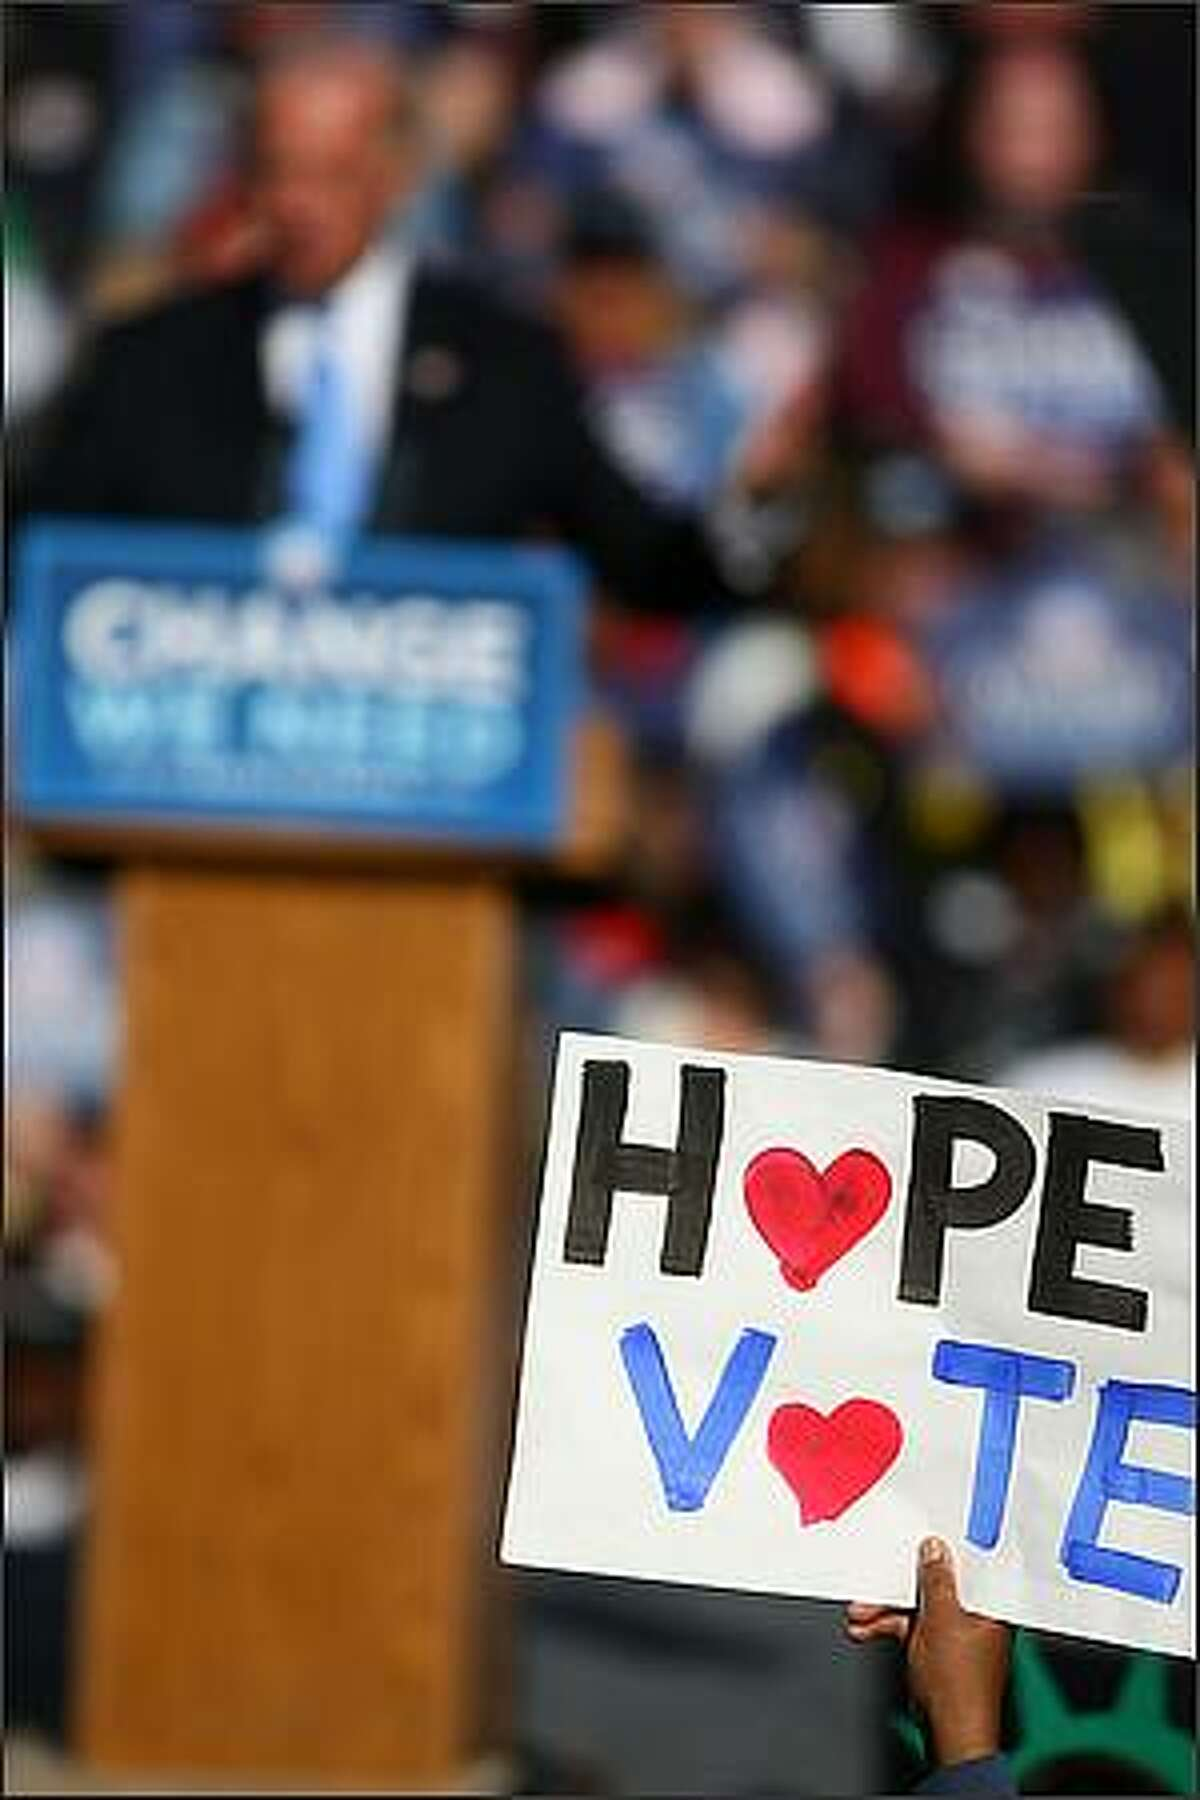 Democratic Vice Presidential candidate Joe Biden speaks on stage as a supporter holds a sign at Cheney Stadium in Tacoma.